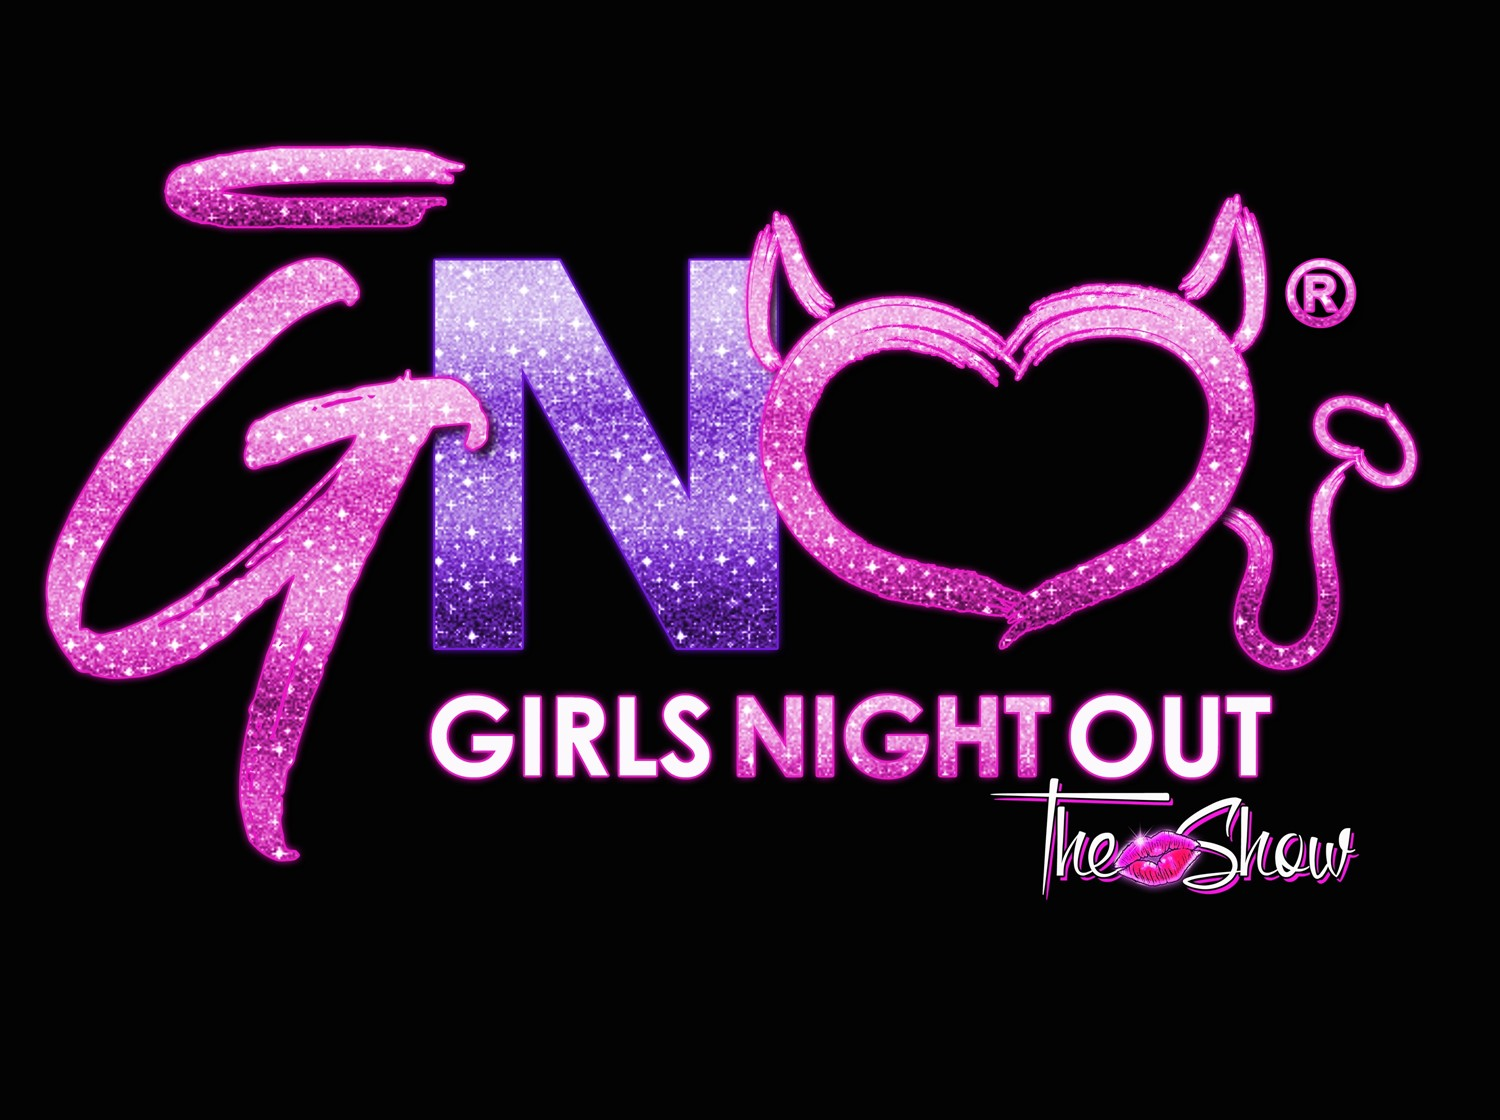 Oasis on the River (18+) Sanford, FL on Jun 16, 20:00@Oasis on the River - Buy tickets and Get information on Girls Night Out the Show tickets.girlsnightouttheshow.com